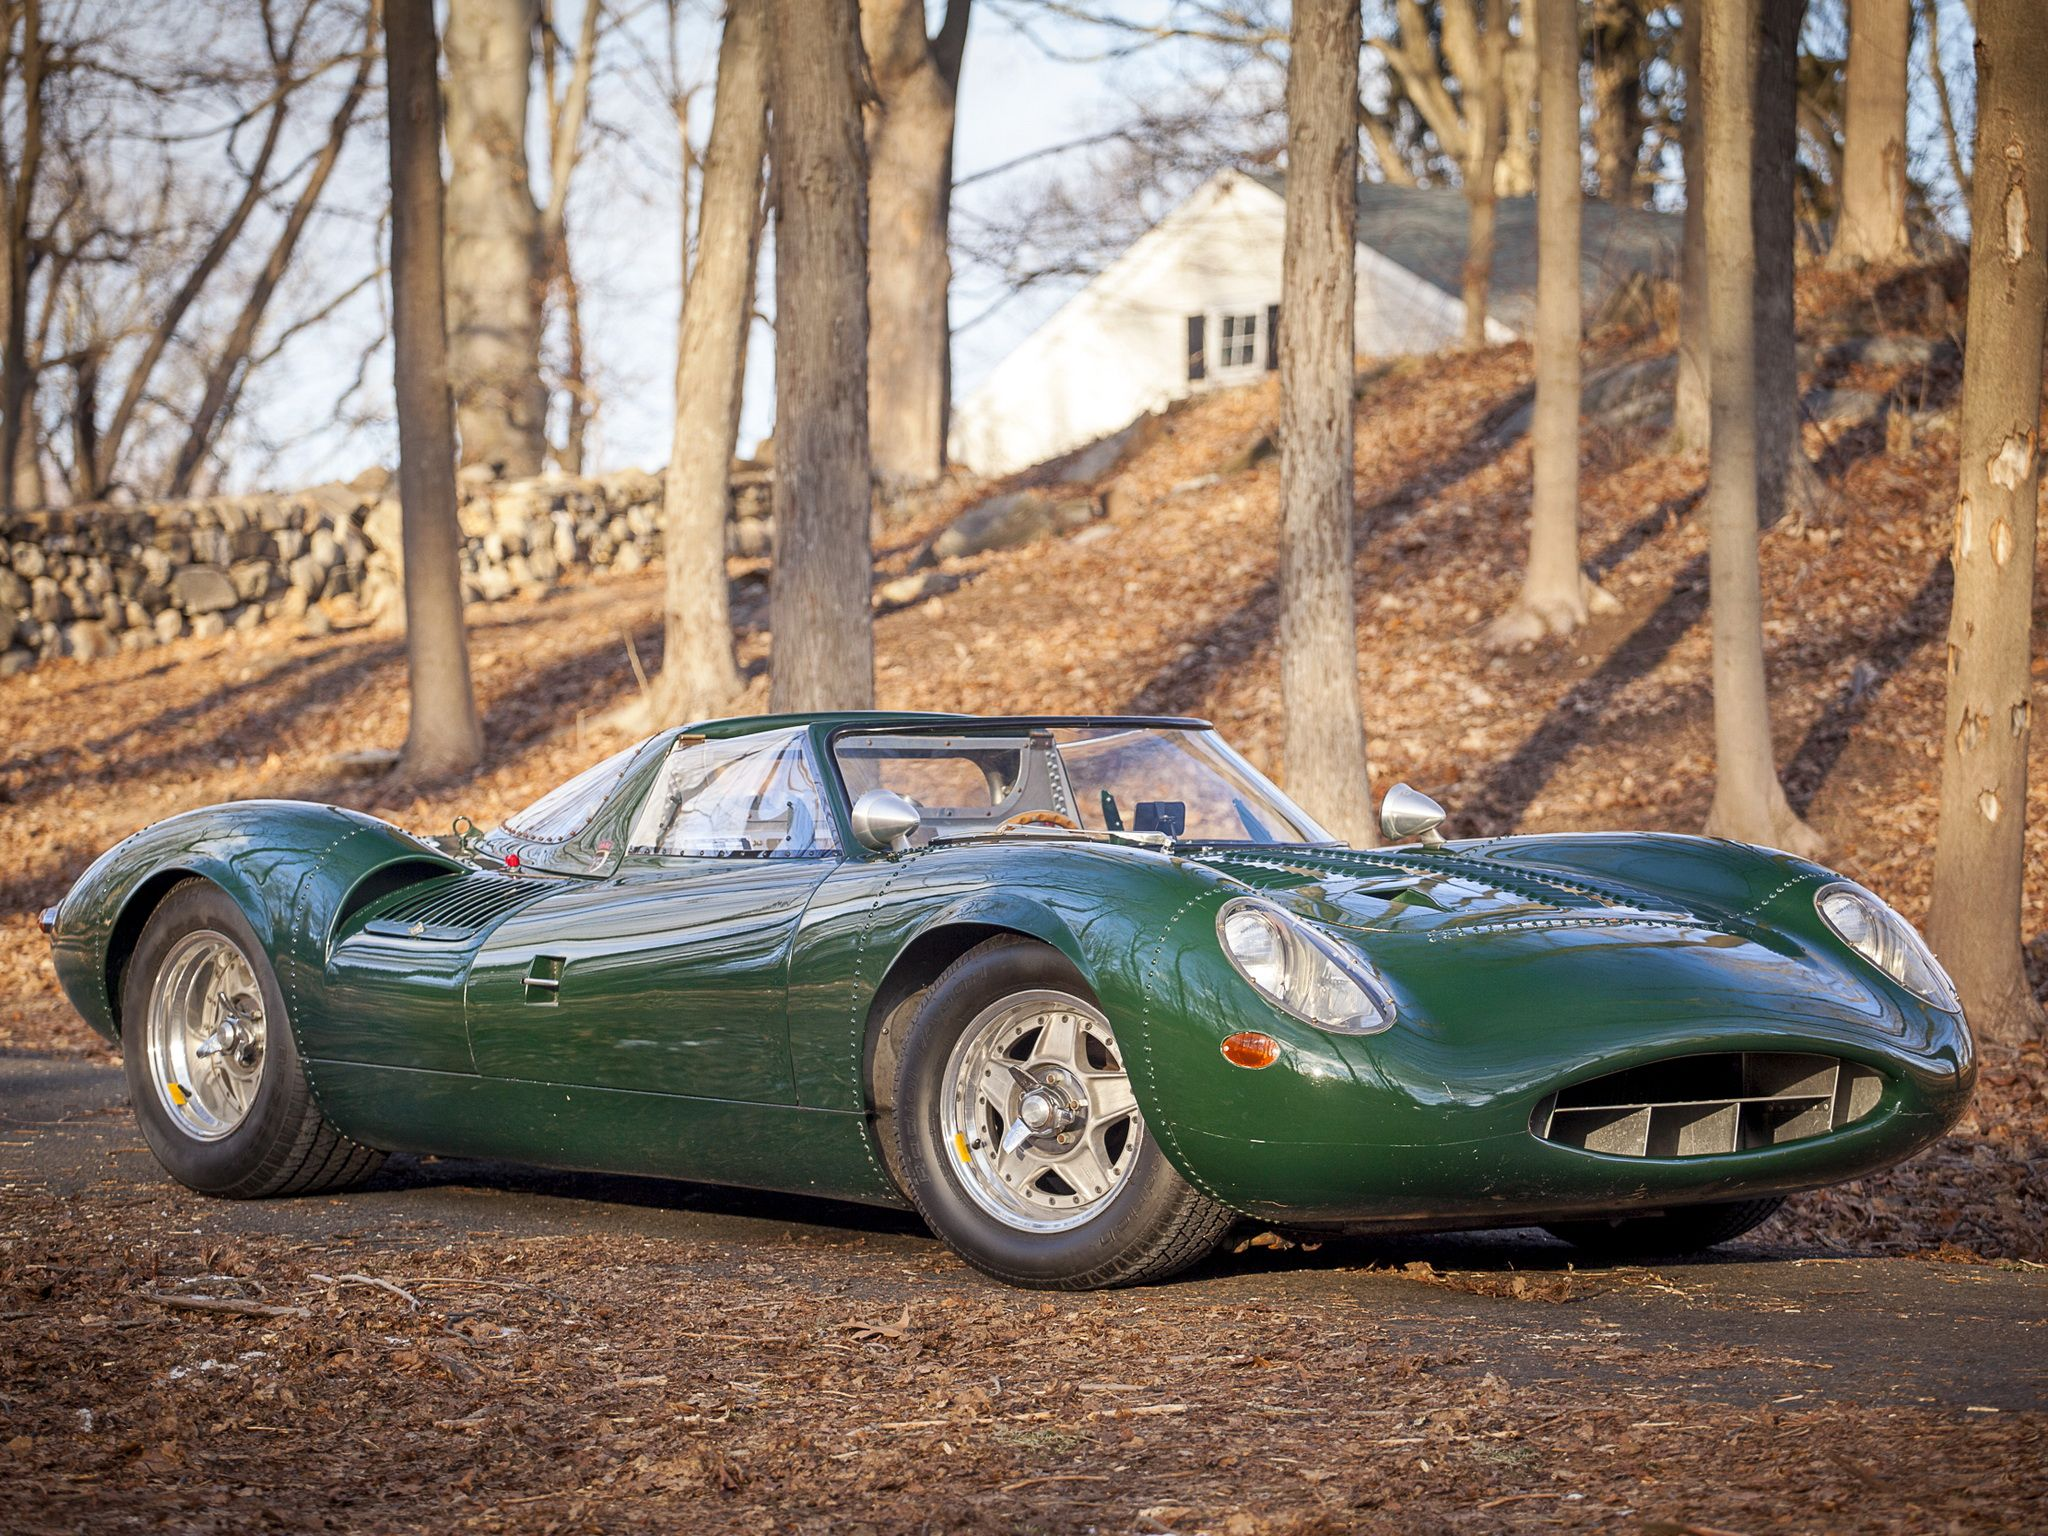 The Jaguar XJ13 Was A Prototype, Race Car Created By Jaguar To Challenge At  Le